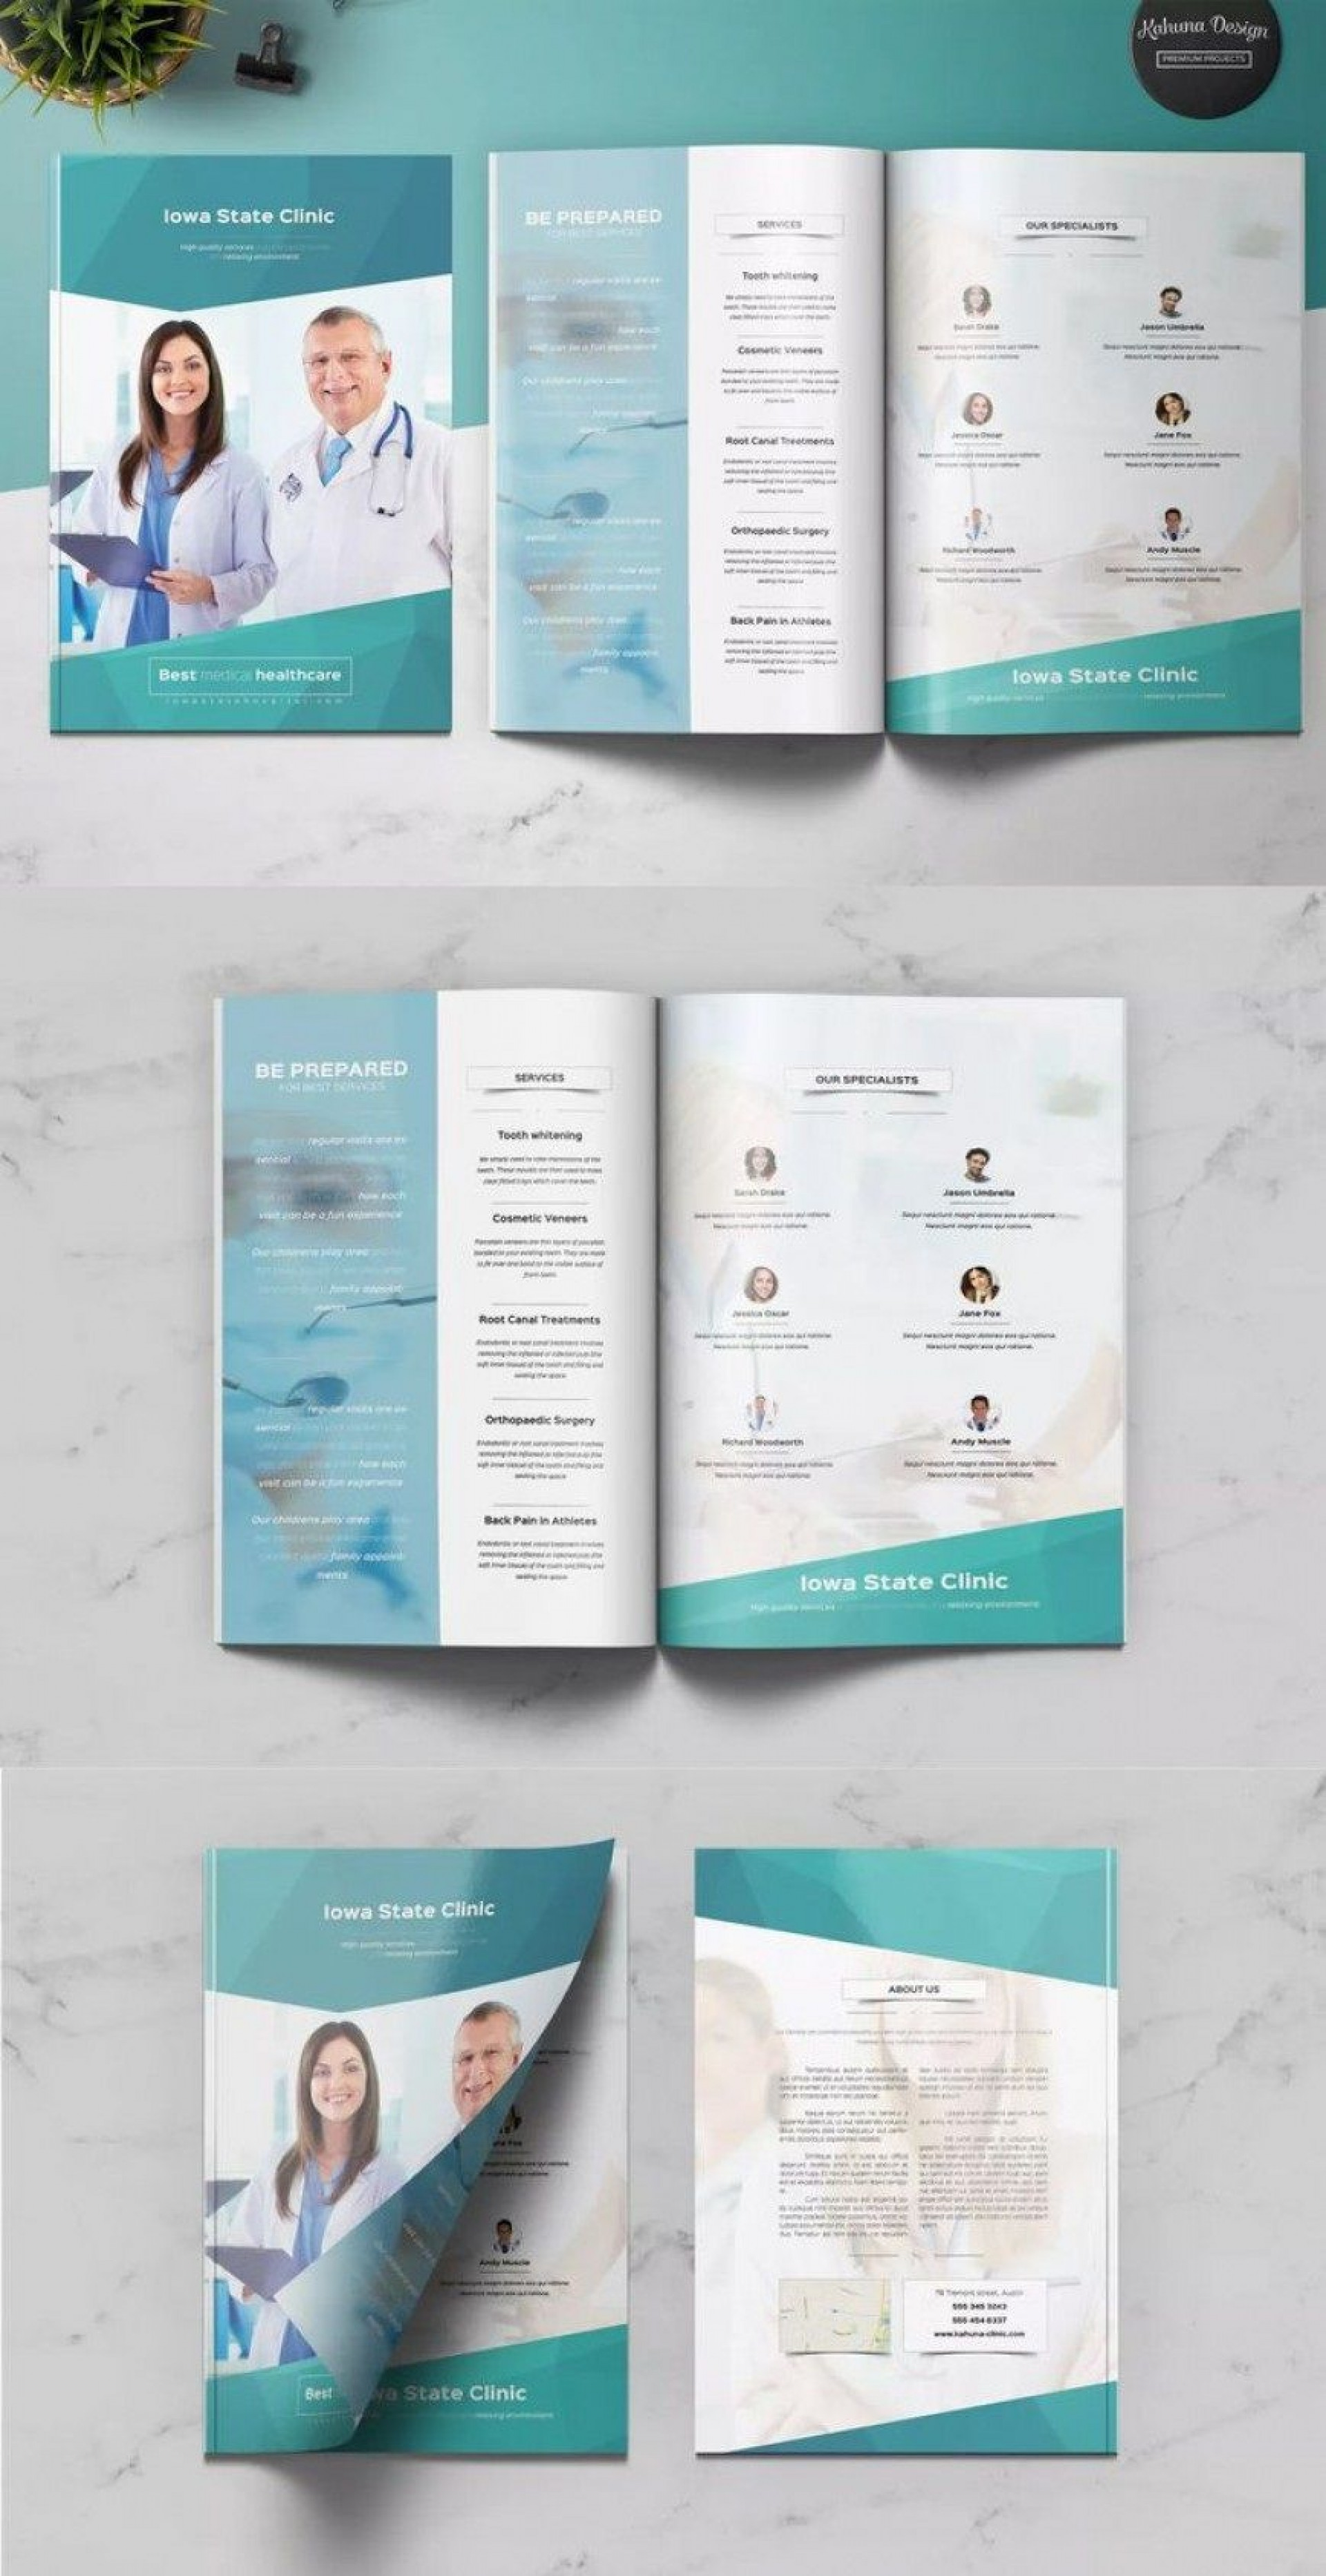 007 Remarkable Download Brochure Template For Microsoft Word 2007 High Def  Free1920